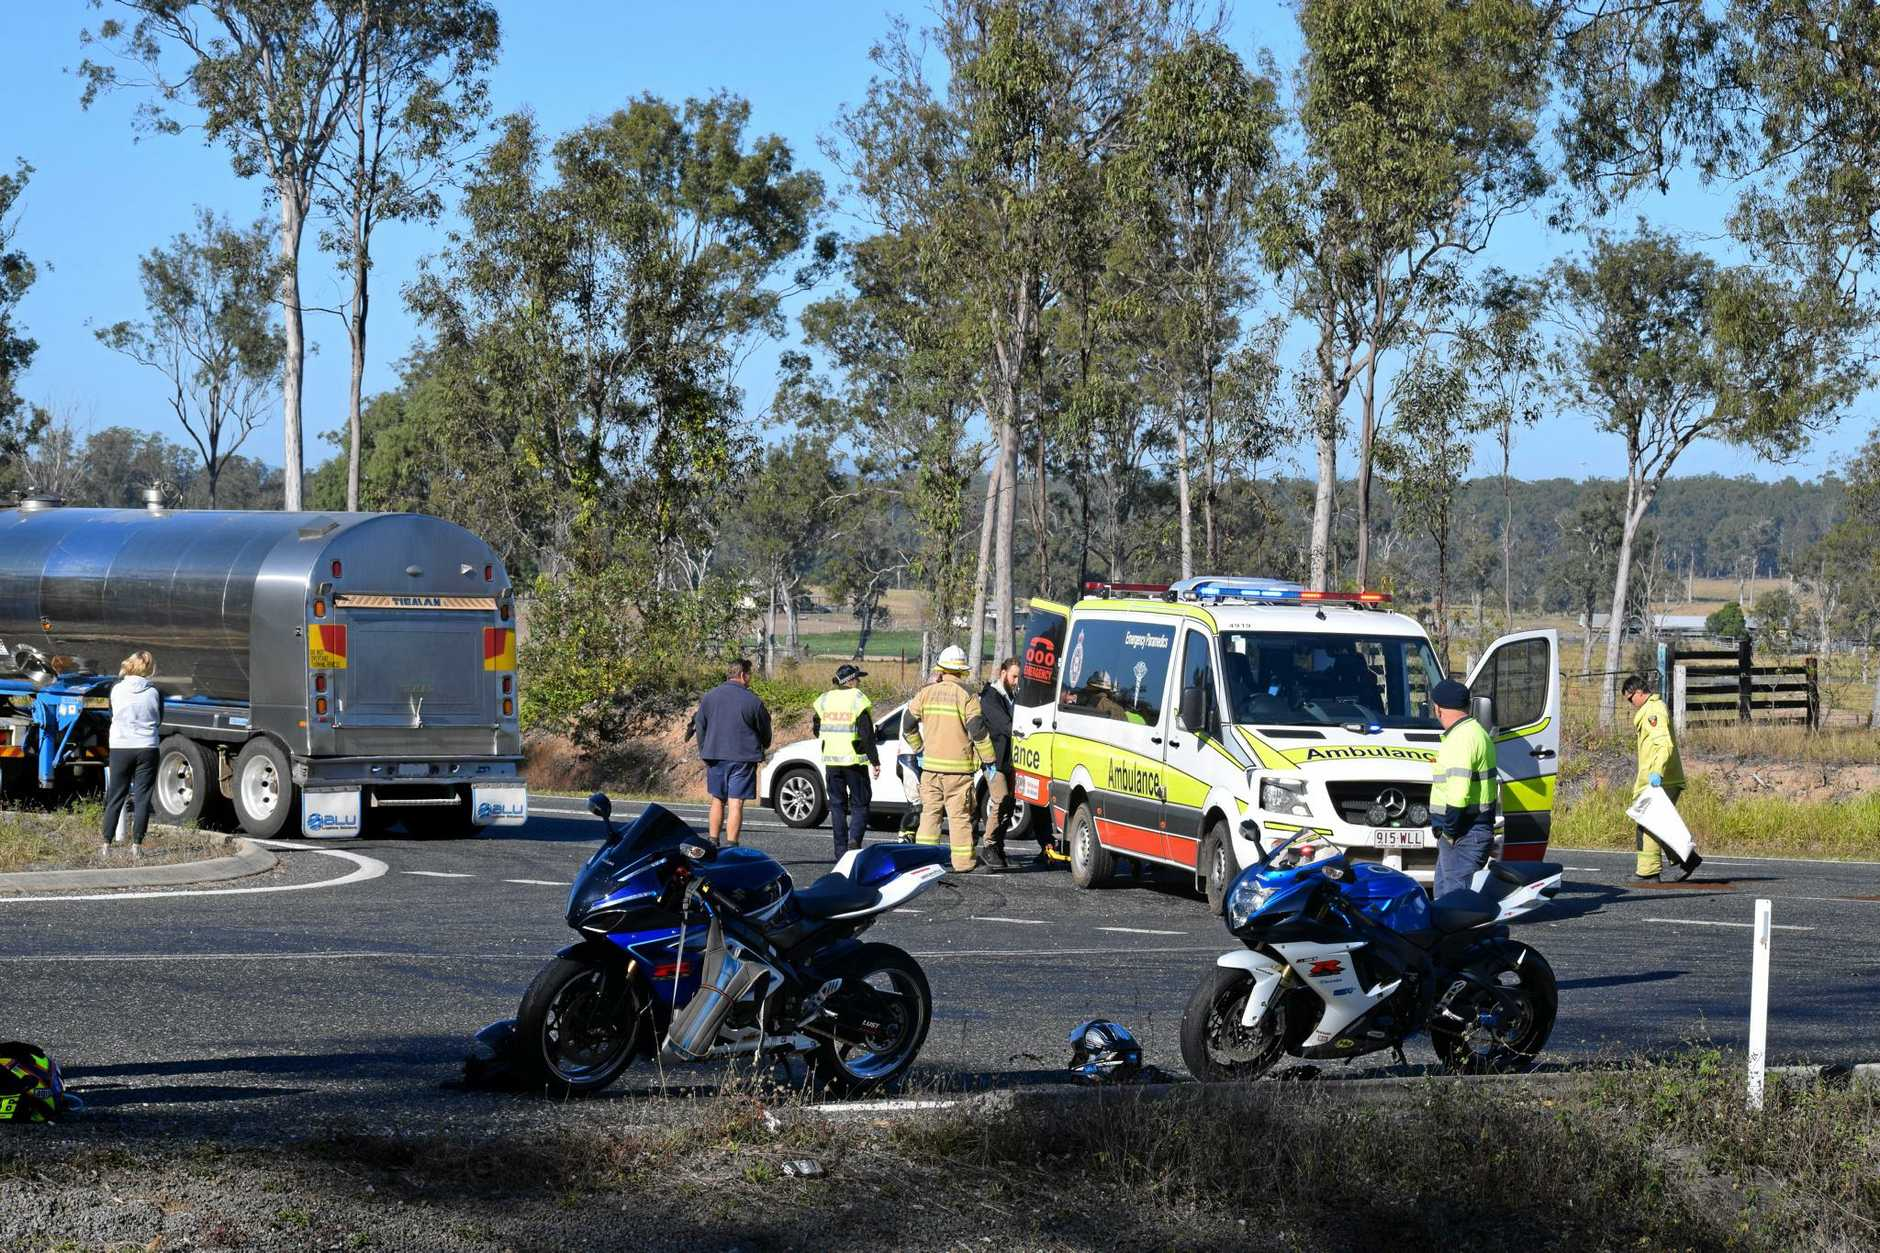 A woman has been injured in a motorbike crash near Curra.